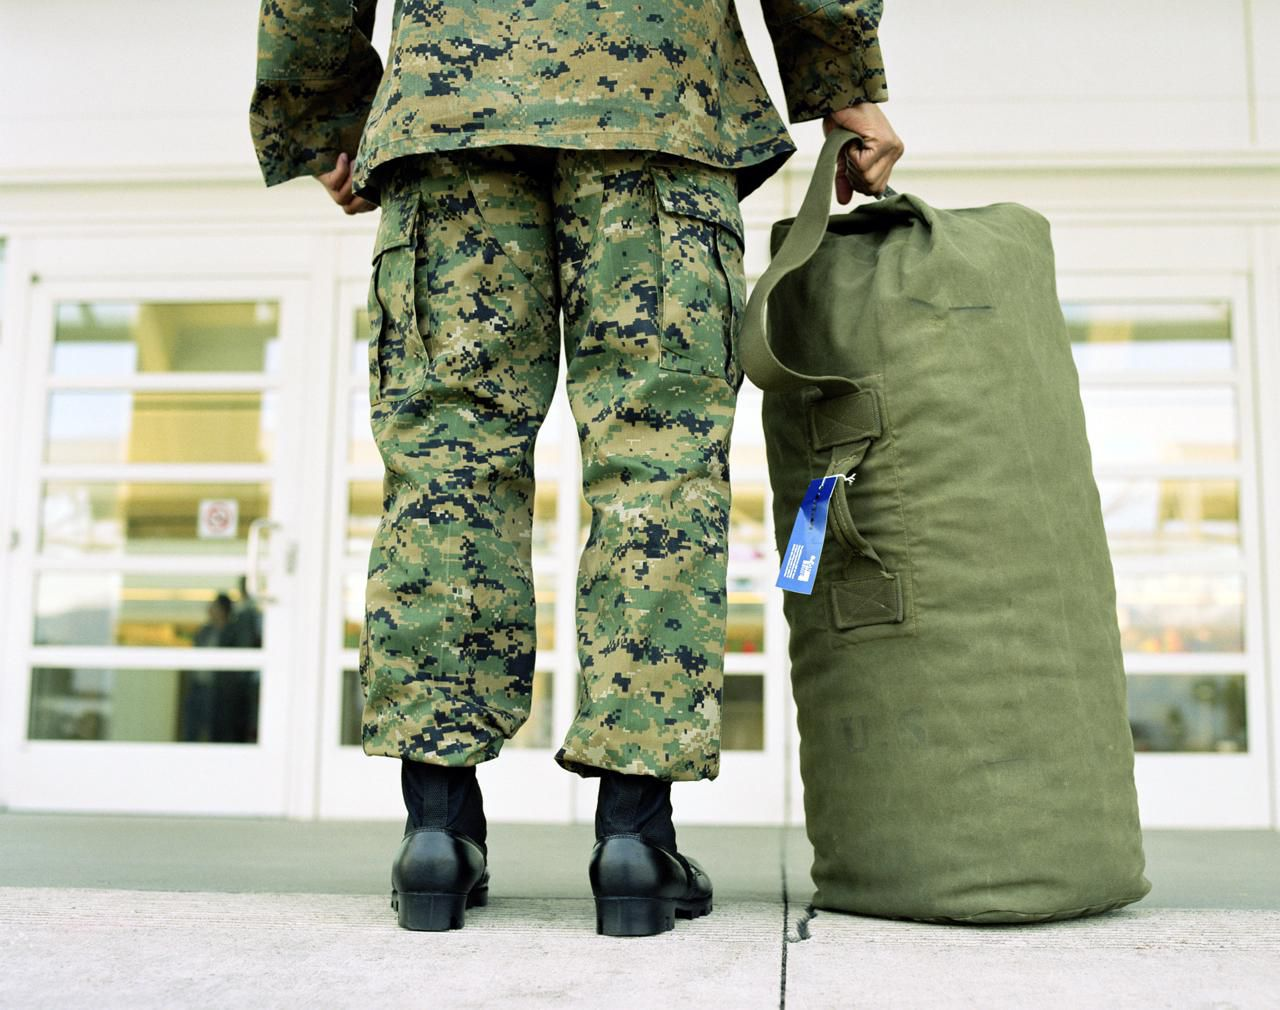 Chapter 61 medical discharge - Military Soldier With Bag In Airport Low Section